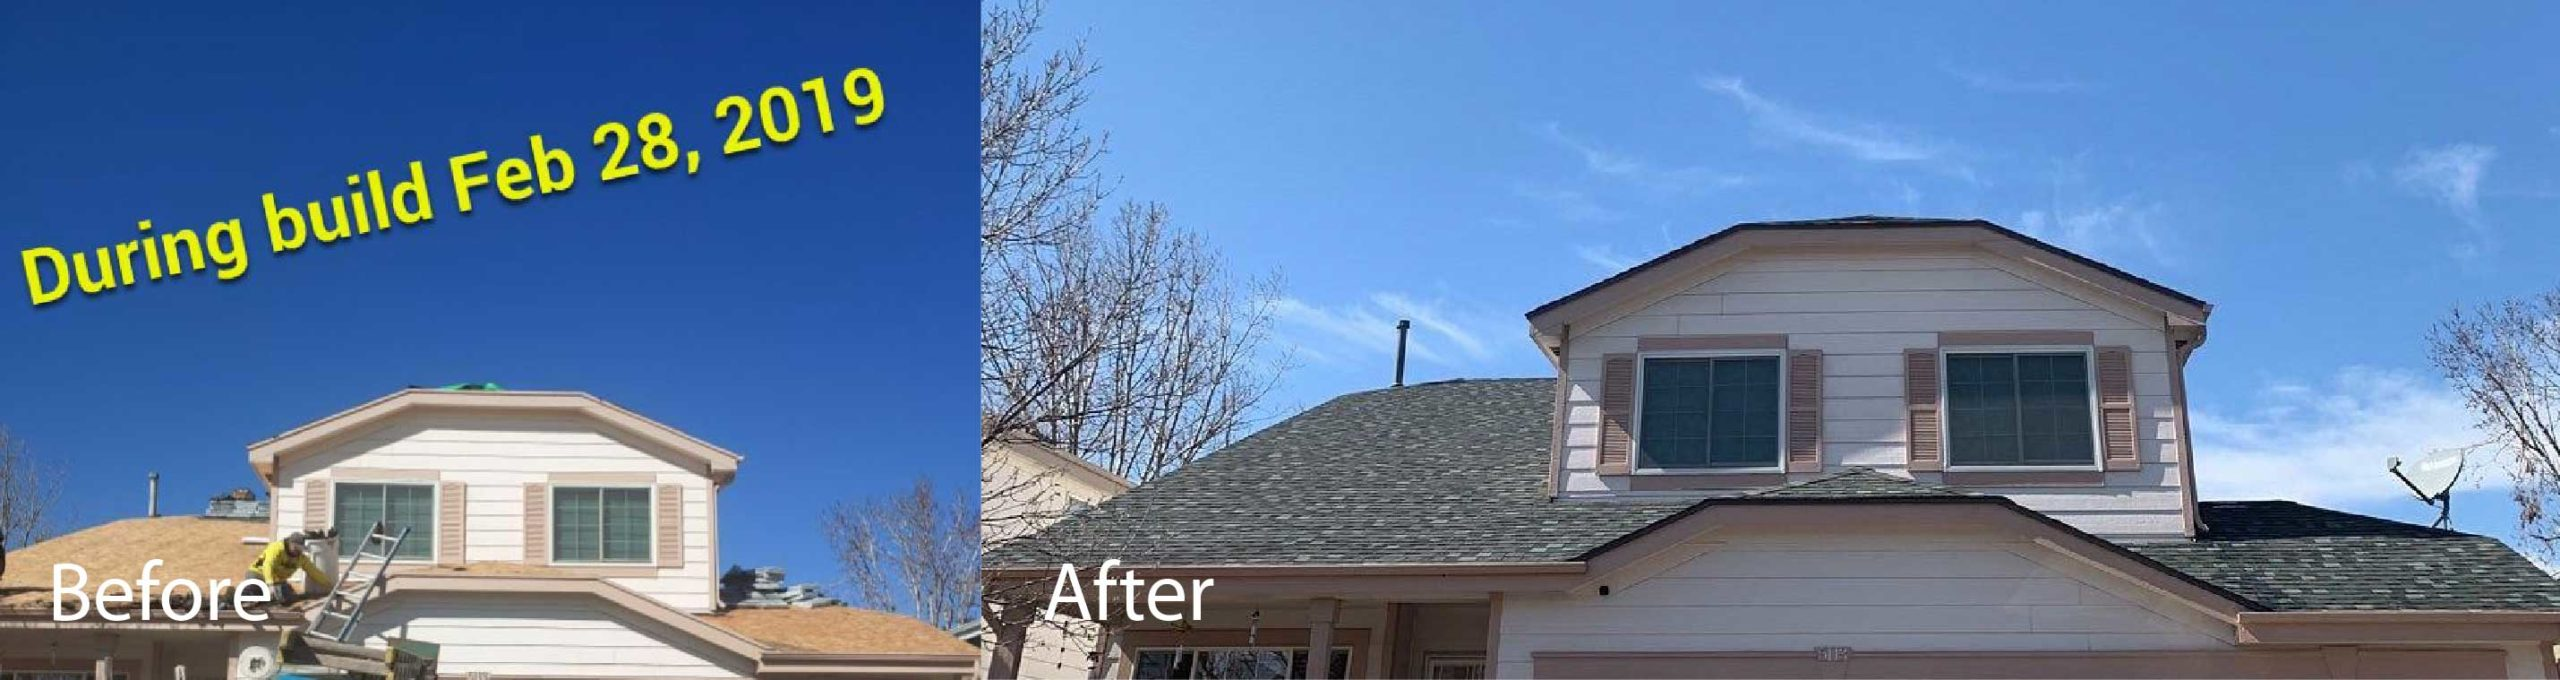 Broomfield-Monarch-Roofing-Service-Locations